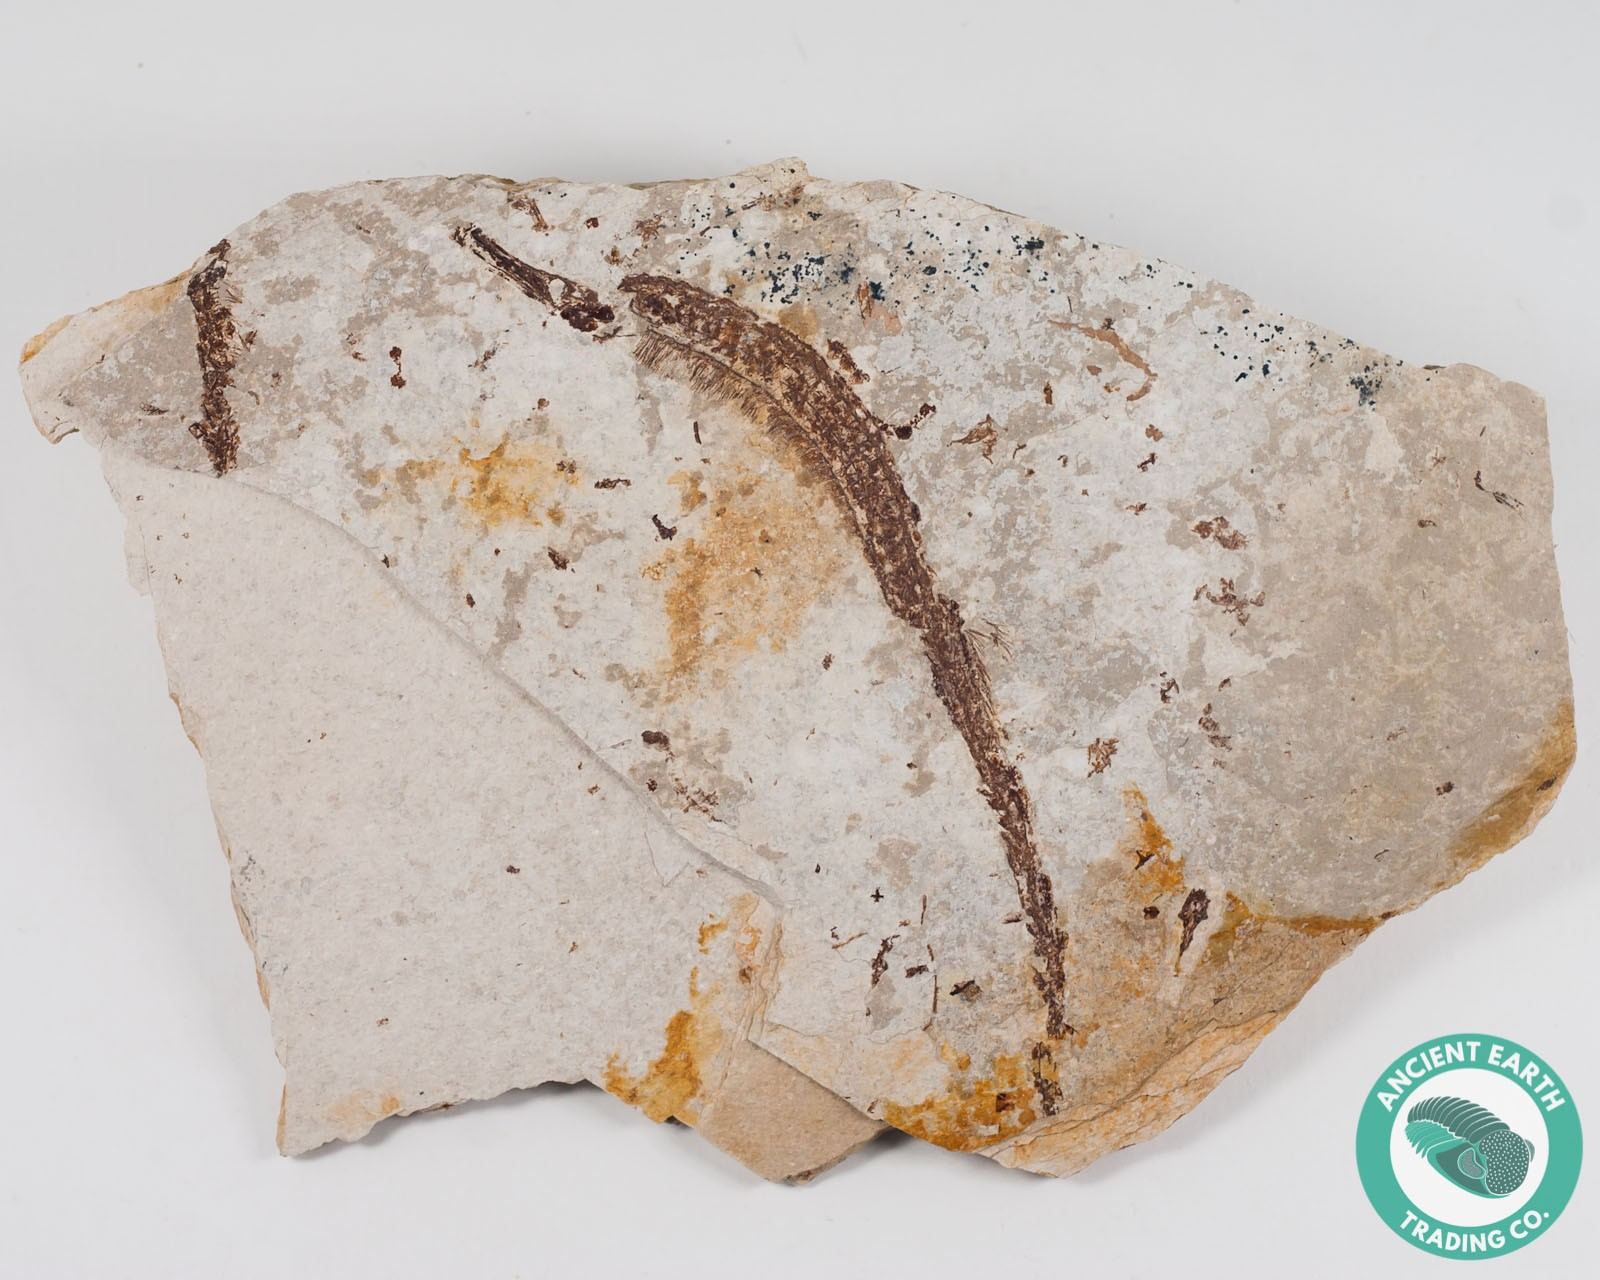 5.82 in Pipefish Fossil - New Locality - California